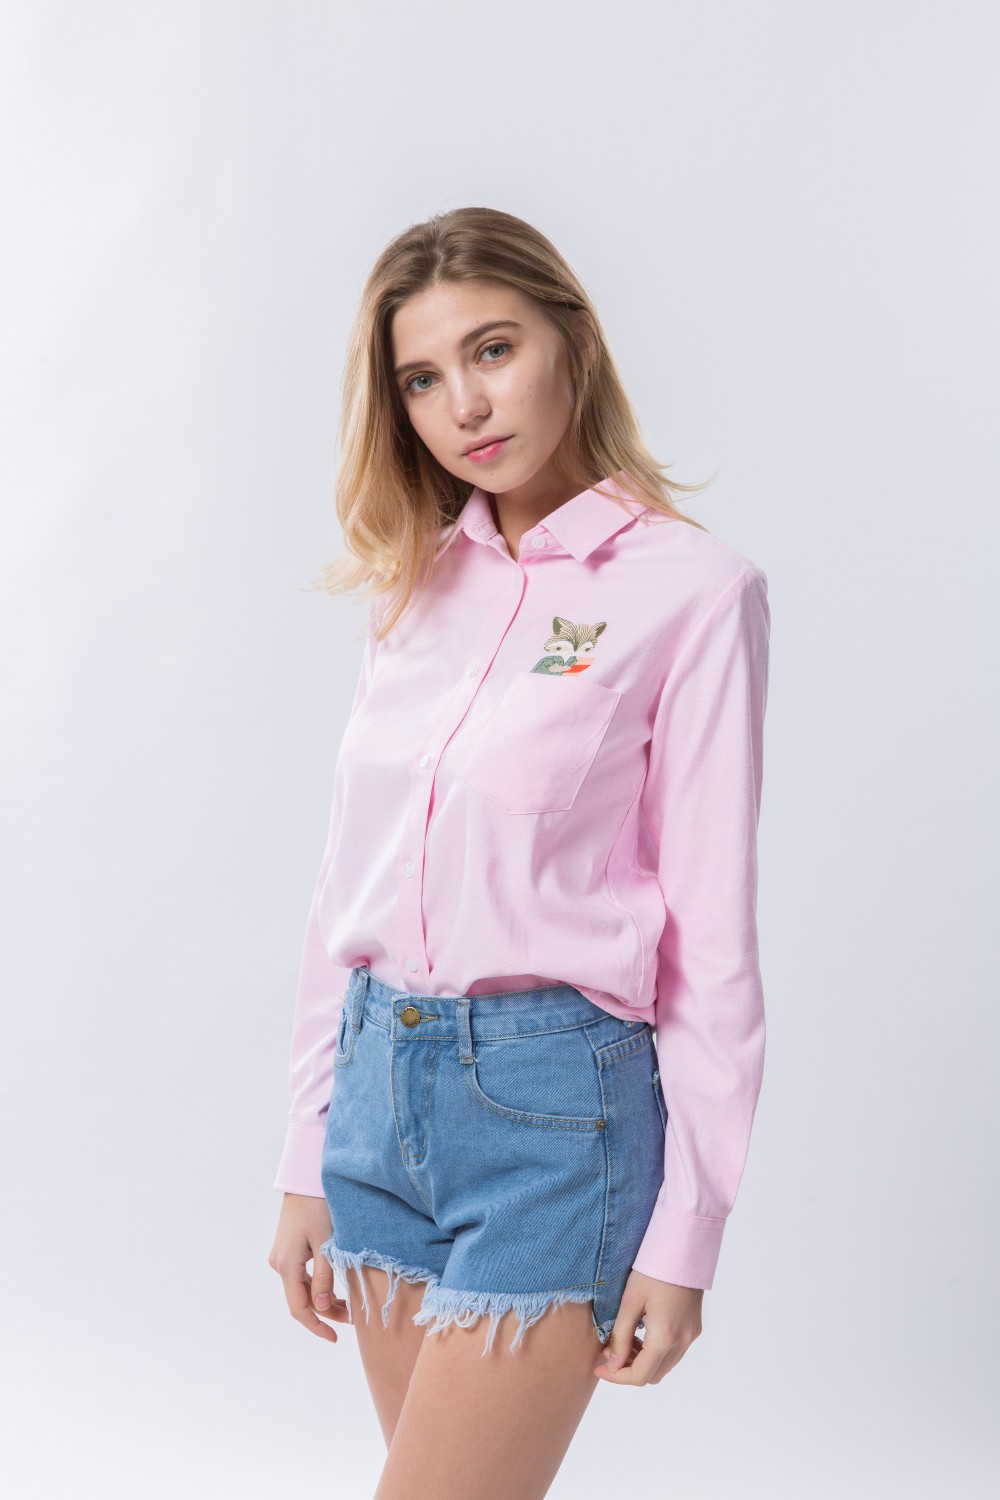 HTB1SpjOOVXXXXcsXFXXq6xXFXXXS - Women Spring Shirt Turn-Down Collar Ladies Blouses Long-Sleeve